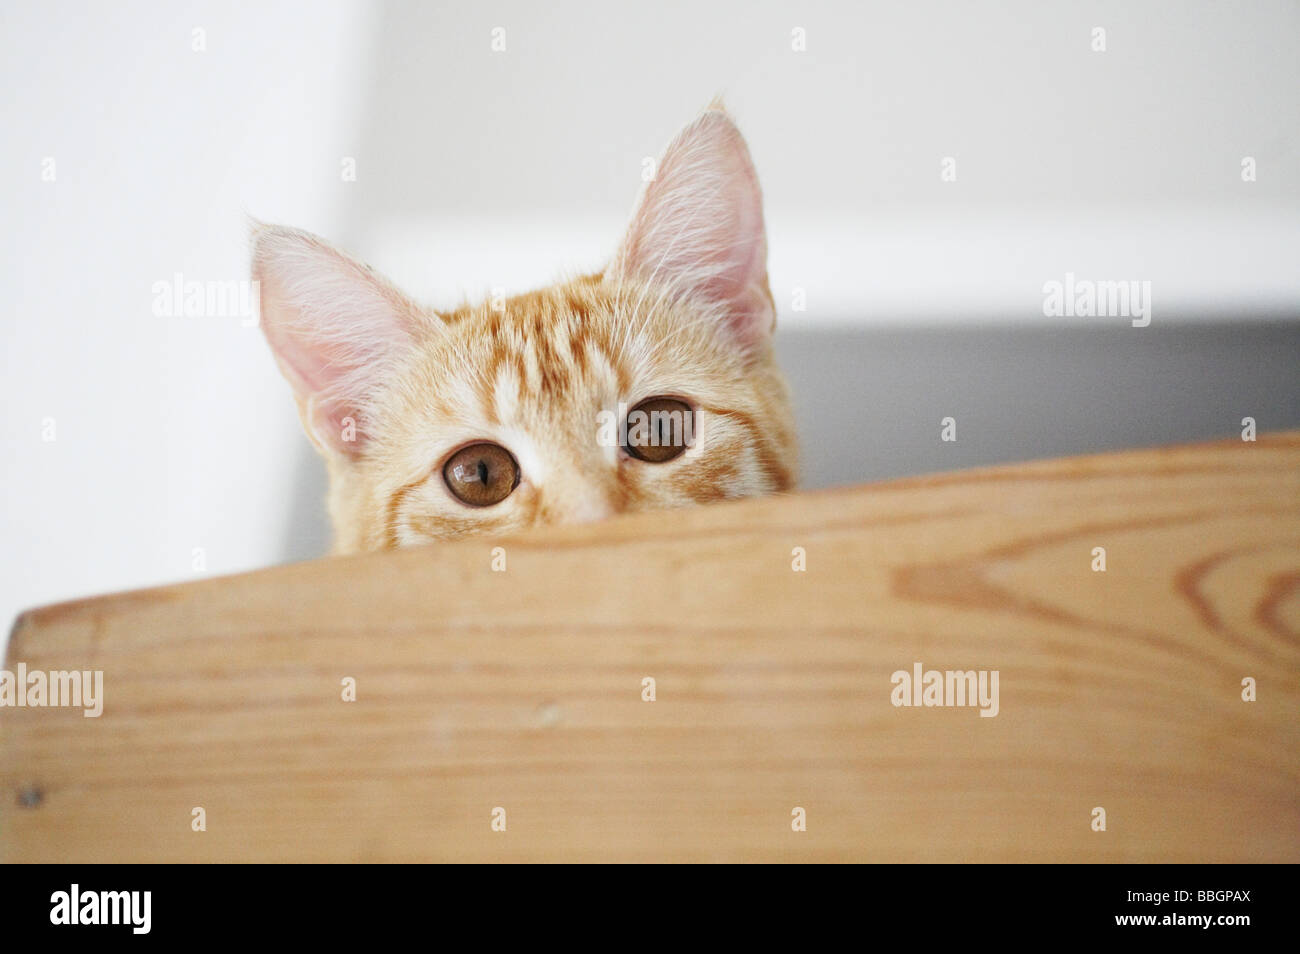 Cheeky naughty cat kitten masquage joue à cache-cache le gingembre tabby pet Photo Stock